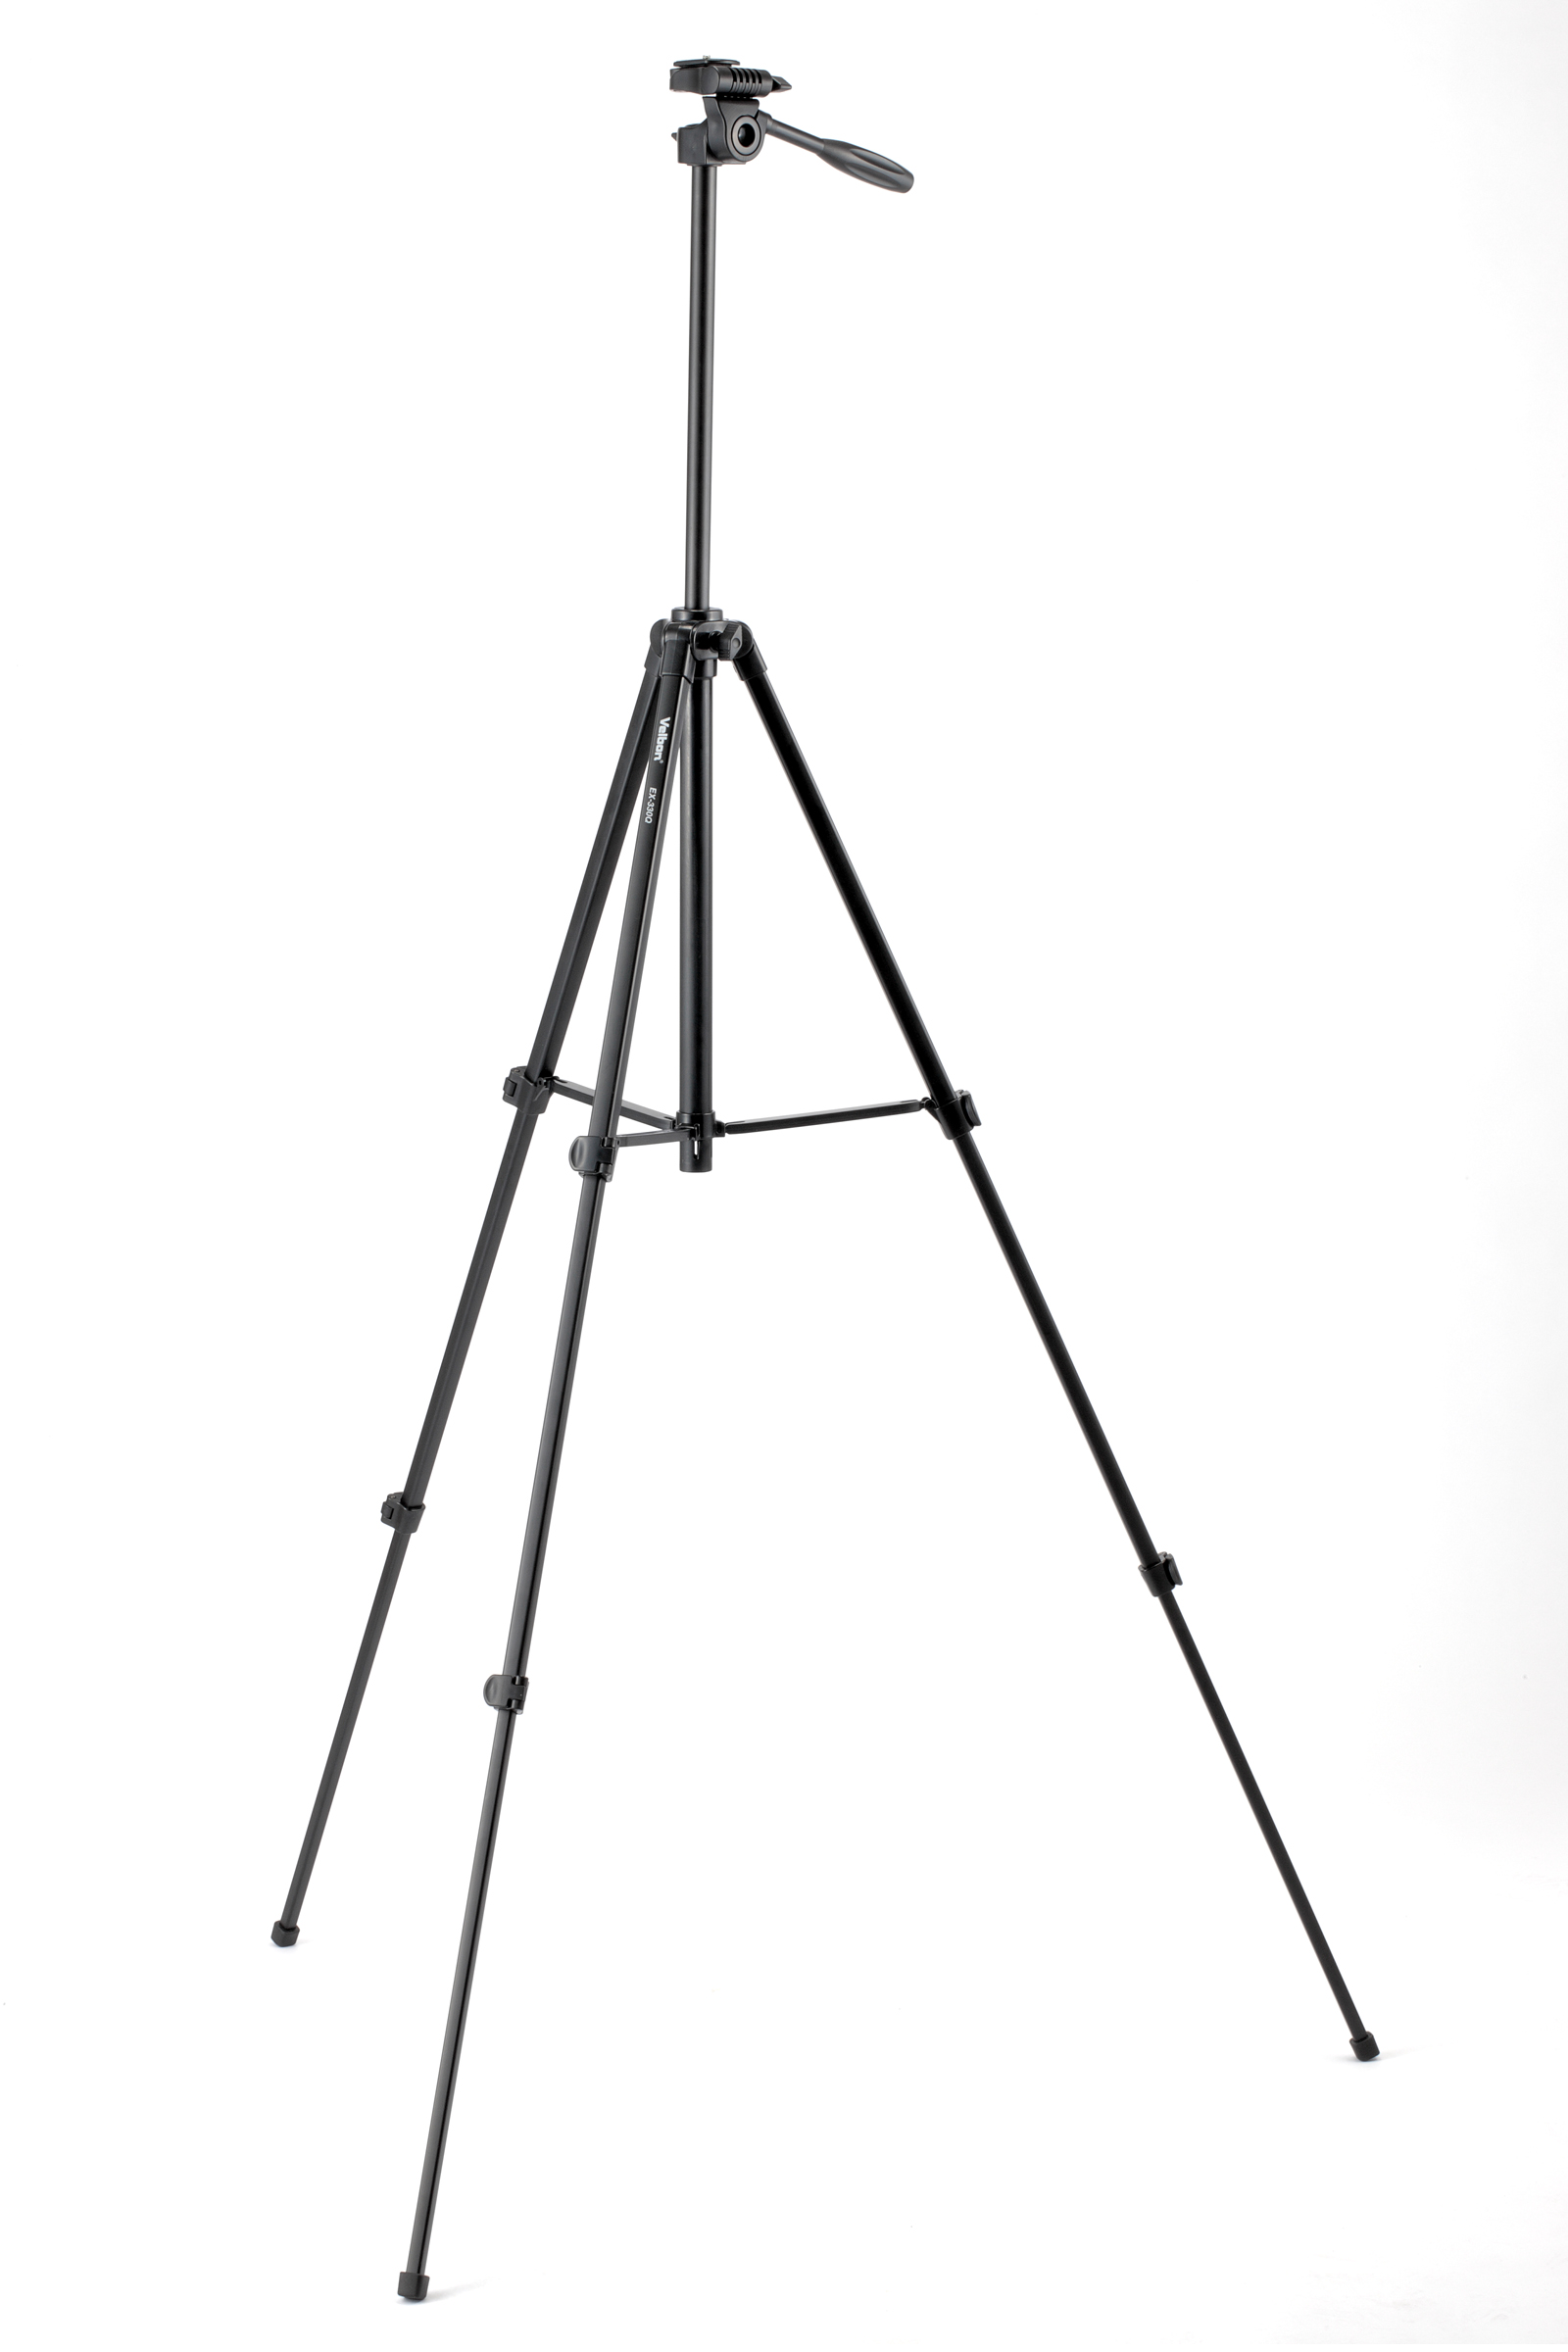 VELBON EX-330Q 3 SECOND LIGHTWEIGHT TRIPOD, FLIP LEG LOCKS, R